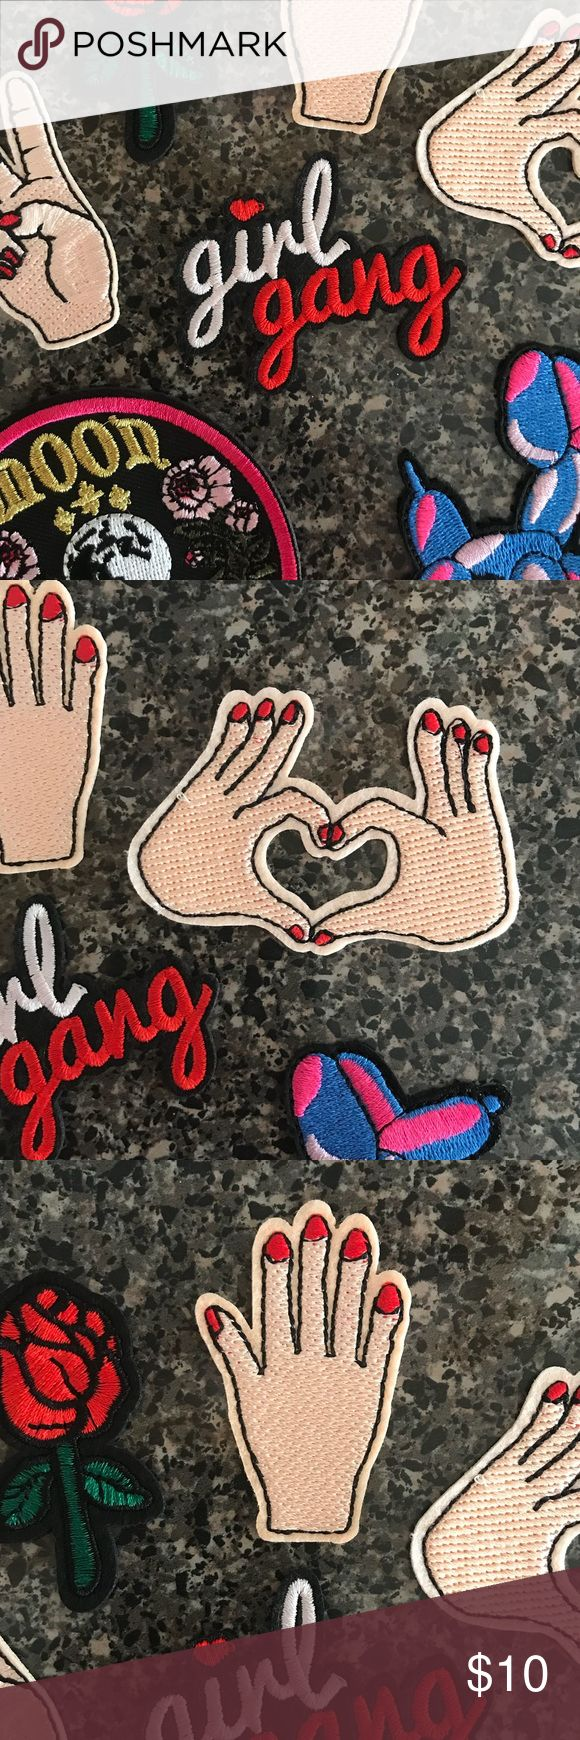 3-pack of Patches Set of 3 stitched patches, can be iron on or stitched on. Photos 2-4 are actual patches. Set of 3 includes one of each: Girl gang in white and red cursive lettering, heart hands with red nails & high five hand patch with red nails.  New in package, perfect for ironing onto a denim jean jacket or tee, backpack, or beanie for a funky 90's retro vibe! ✌🏼 Accessories